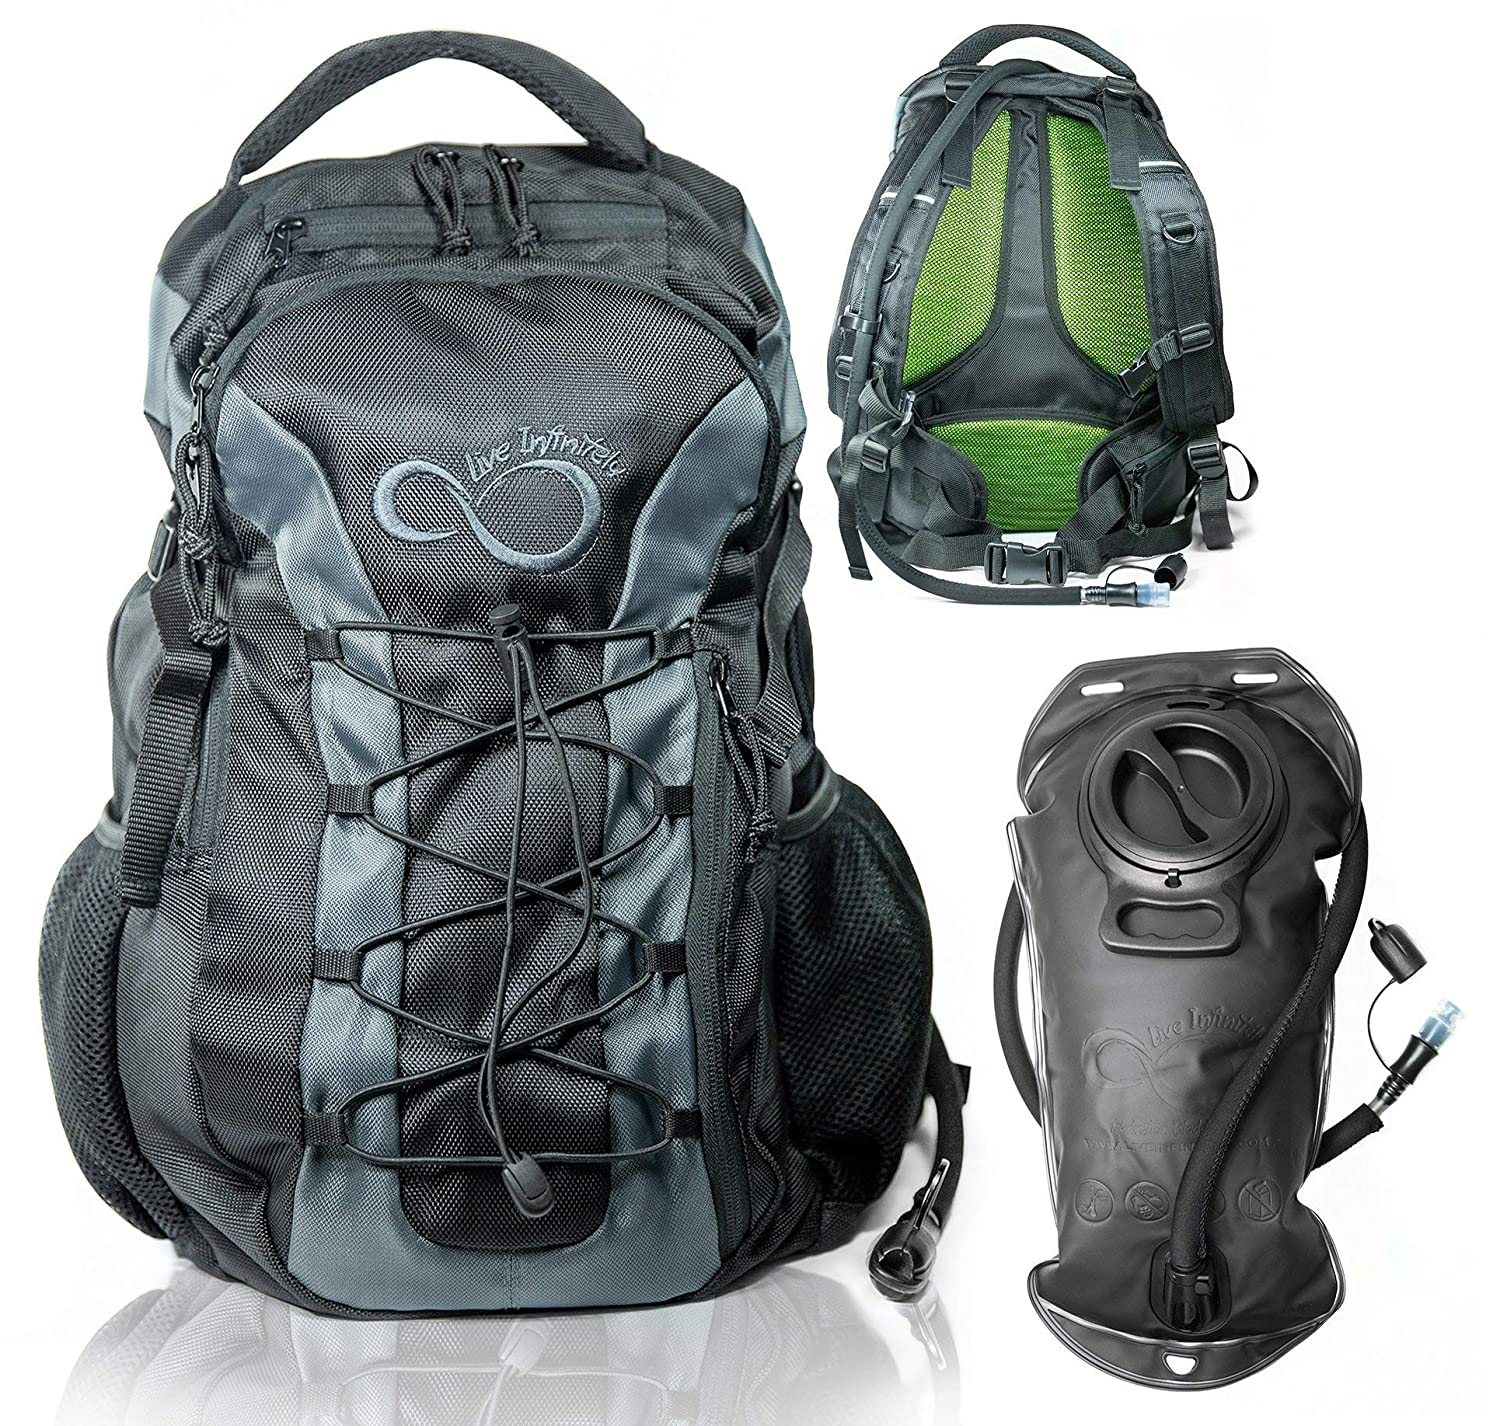 Live Infinitely Hydration Backpack 3.0L TPU Leak 720D Proof Proof Water Silicon Bladder- 720D Polyester -Adjustable Padded Shoulder, Chest & Waist Straps- Silicon Bite Tip & Shut Off Valve- (Large 3L Grey Edge) [並行輸入品] B07R3Y5XPS, 虎姫町:62e6f06e --- anime-portal.club